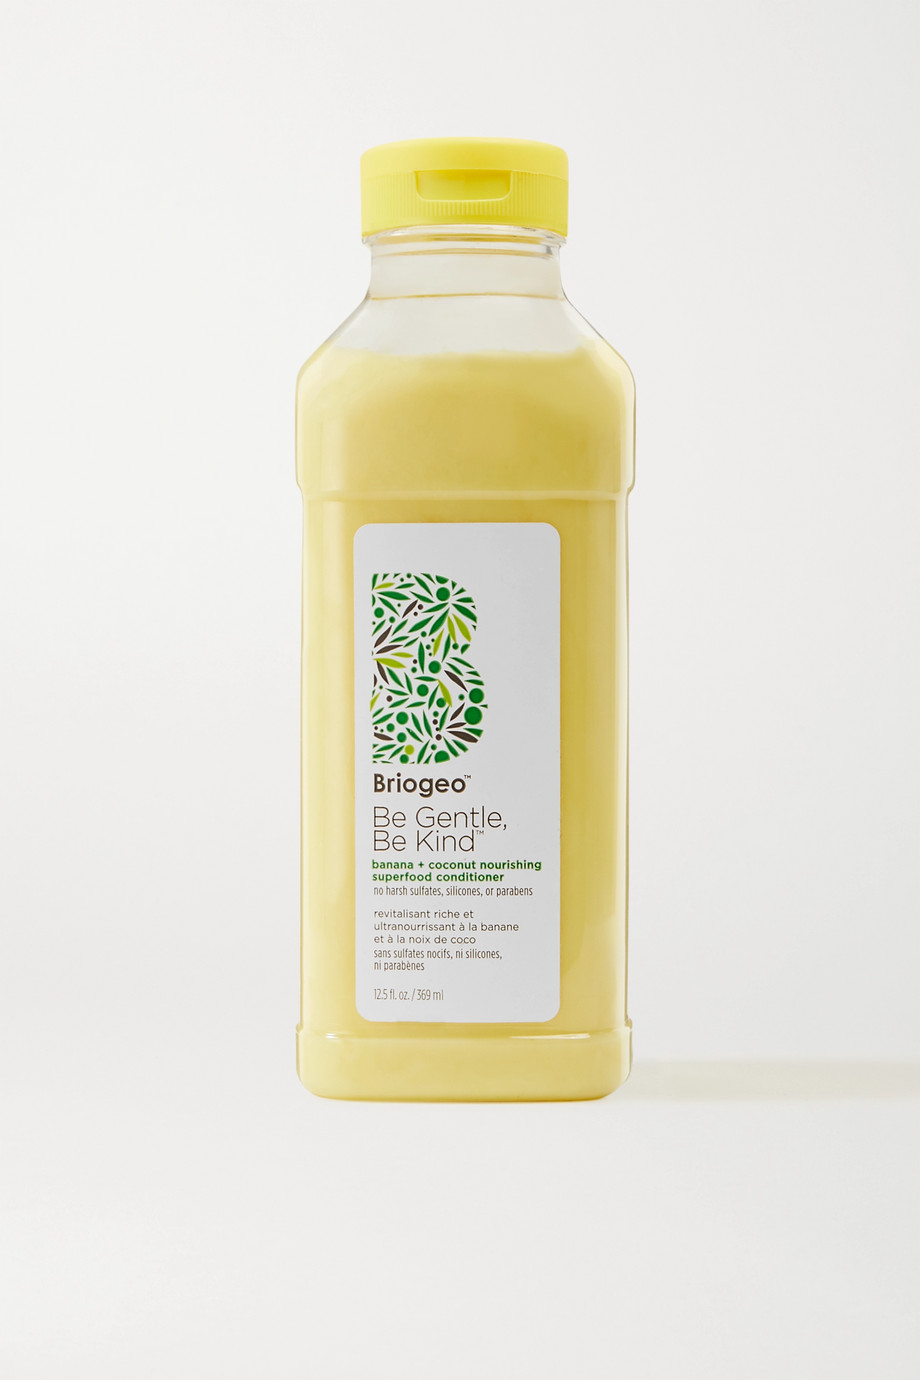 Briogeo Be Gentle, Be Kind Banana + Coconut Nourishing Superfood Conditioner, 369ml